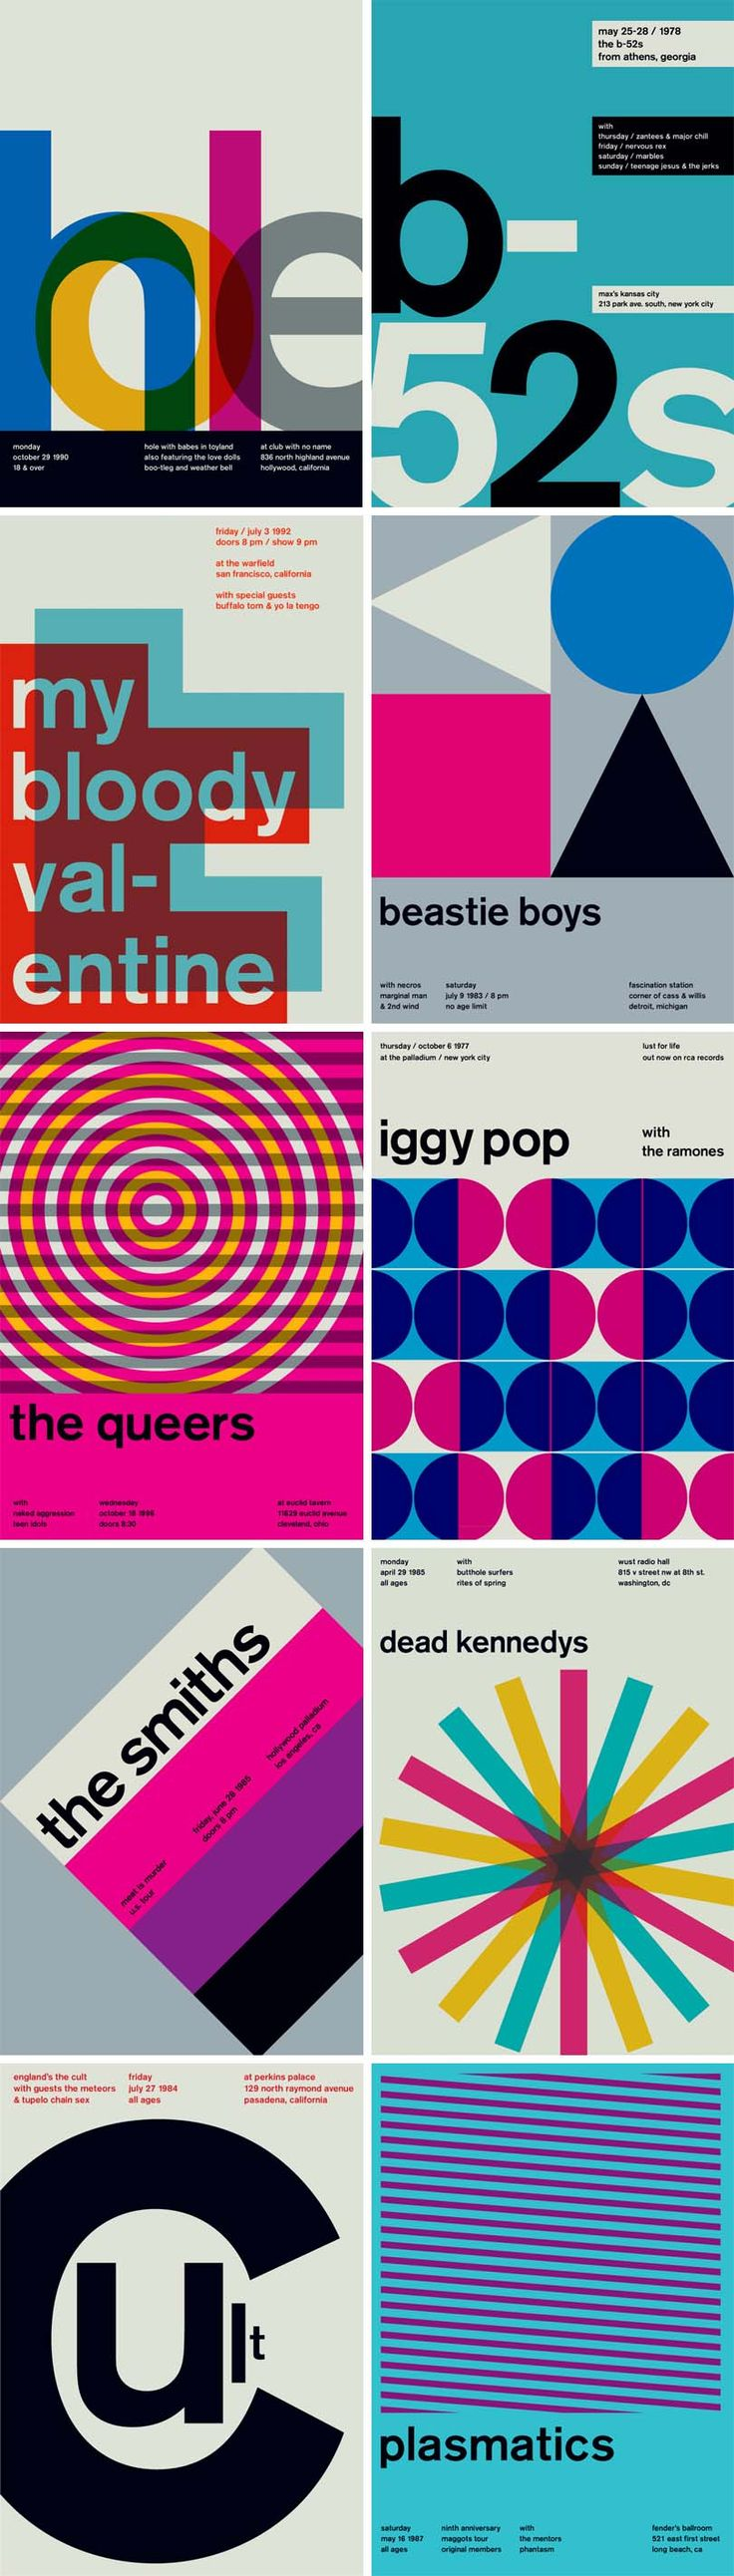 Poster design lesson plan - Swissted Mike Joyce Graphic Design Typography Redesigning Old Punk Hardcore